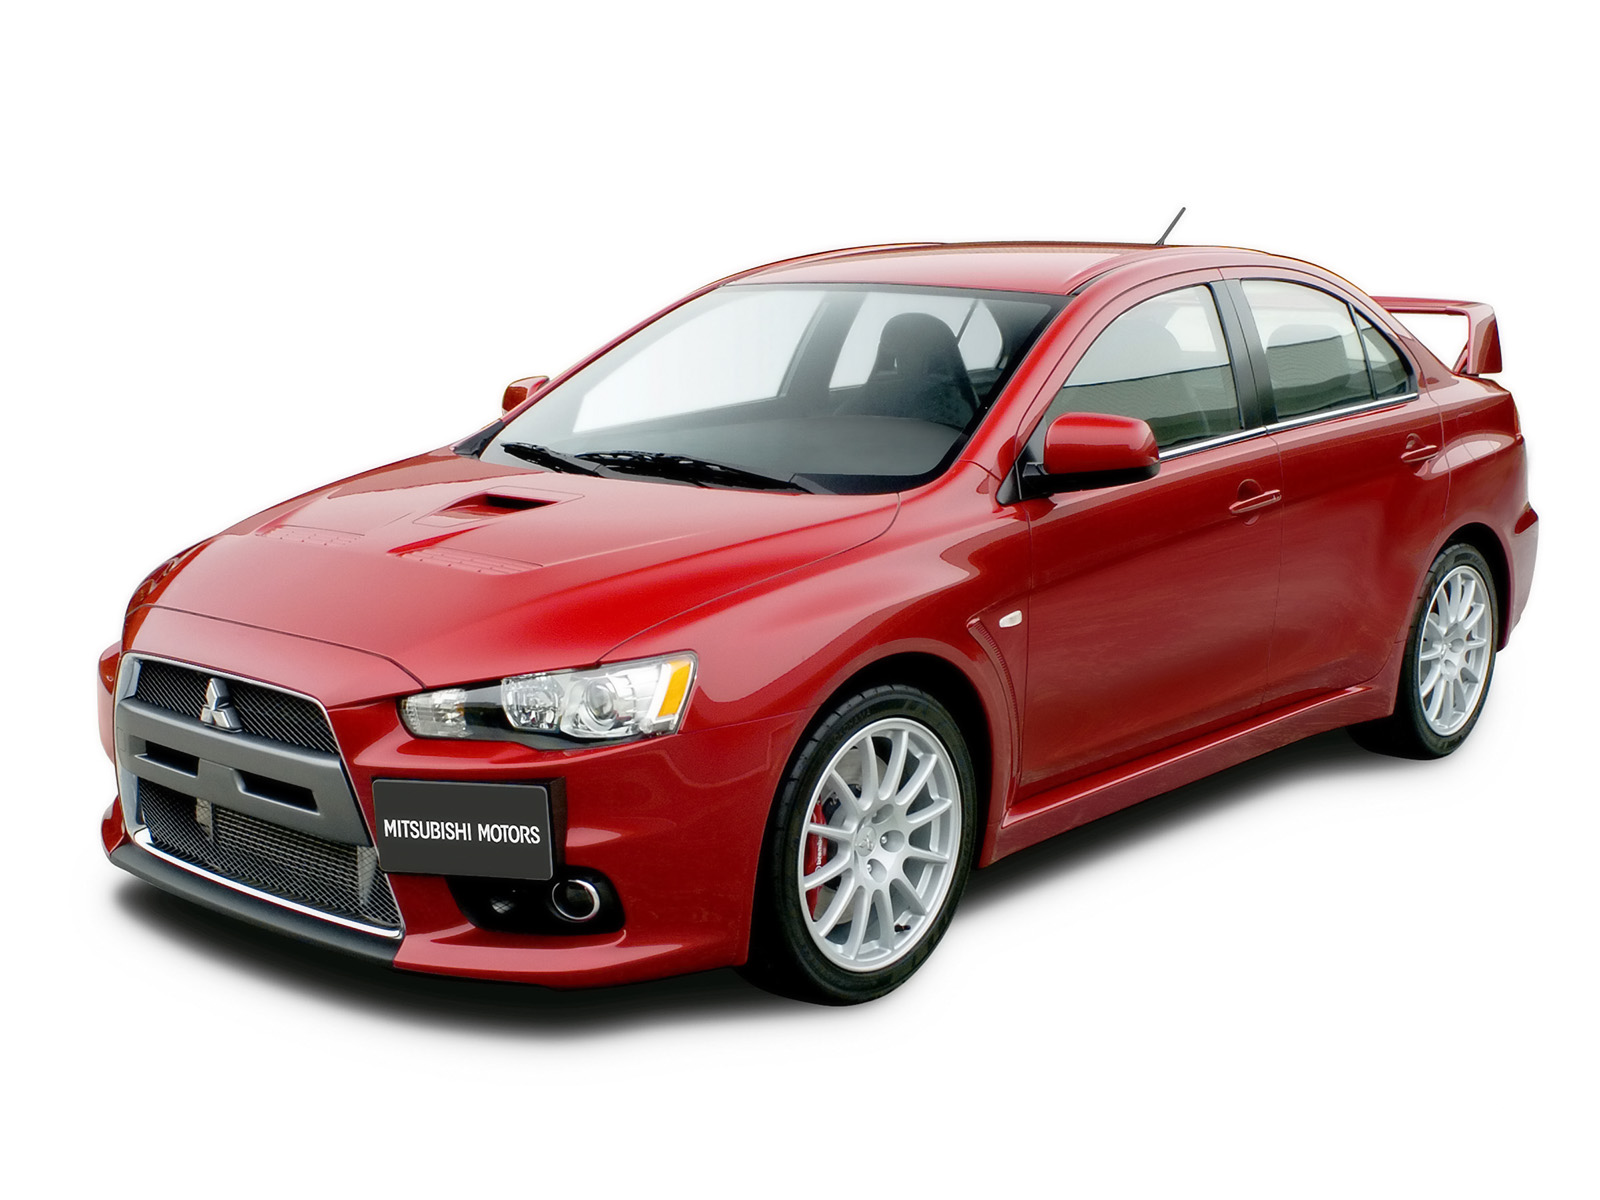 Picture of 2006 Mitsubishi Lancer Evolution